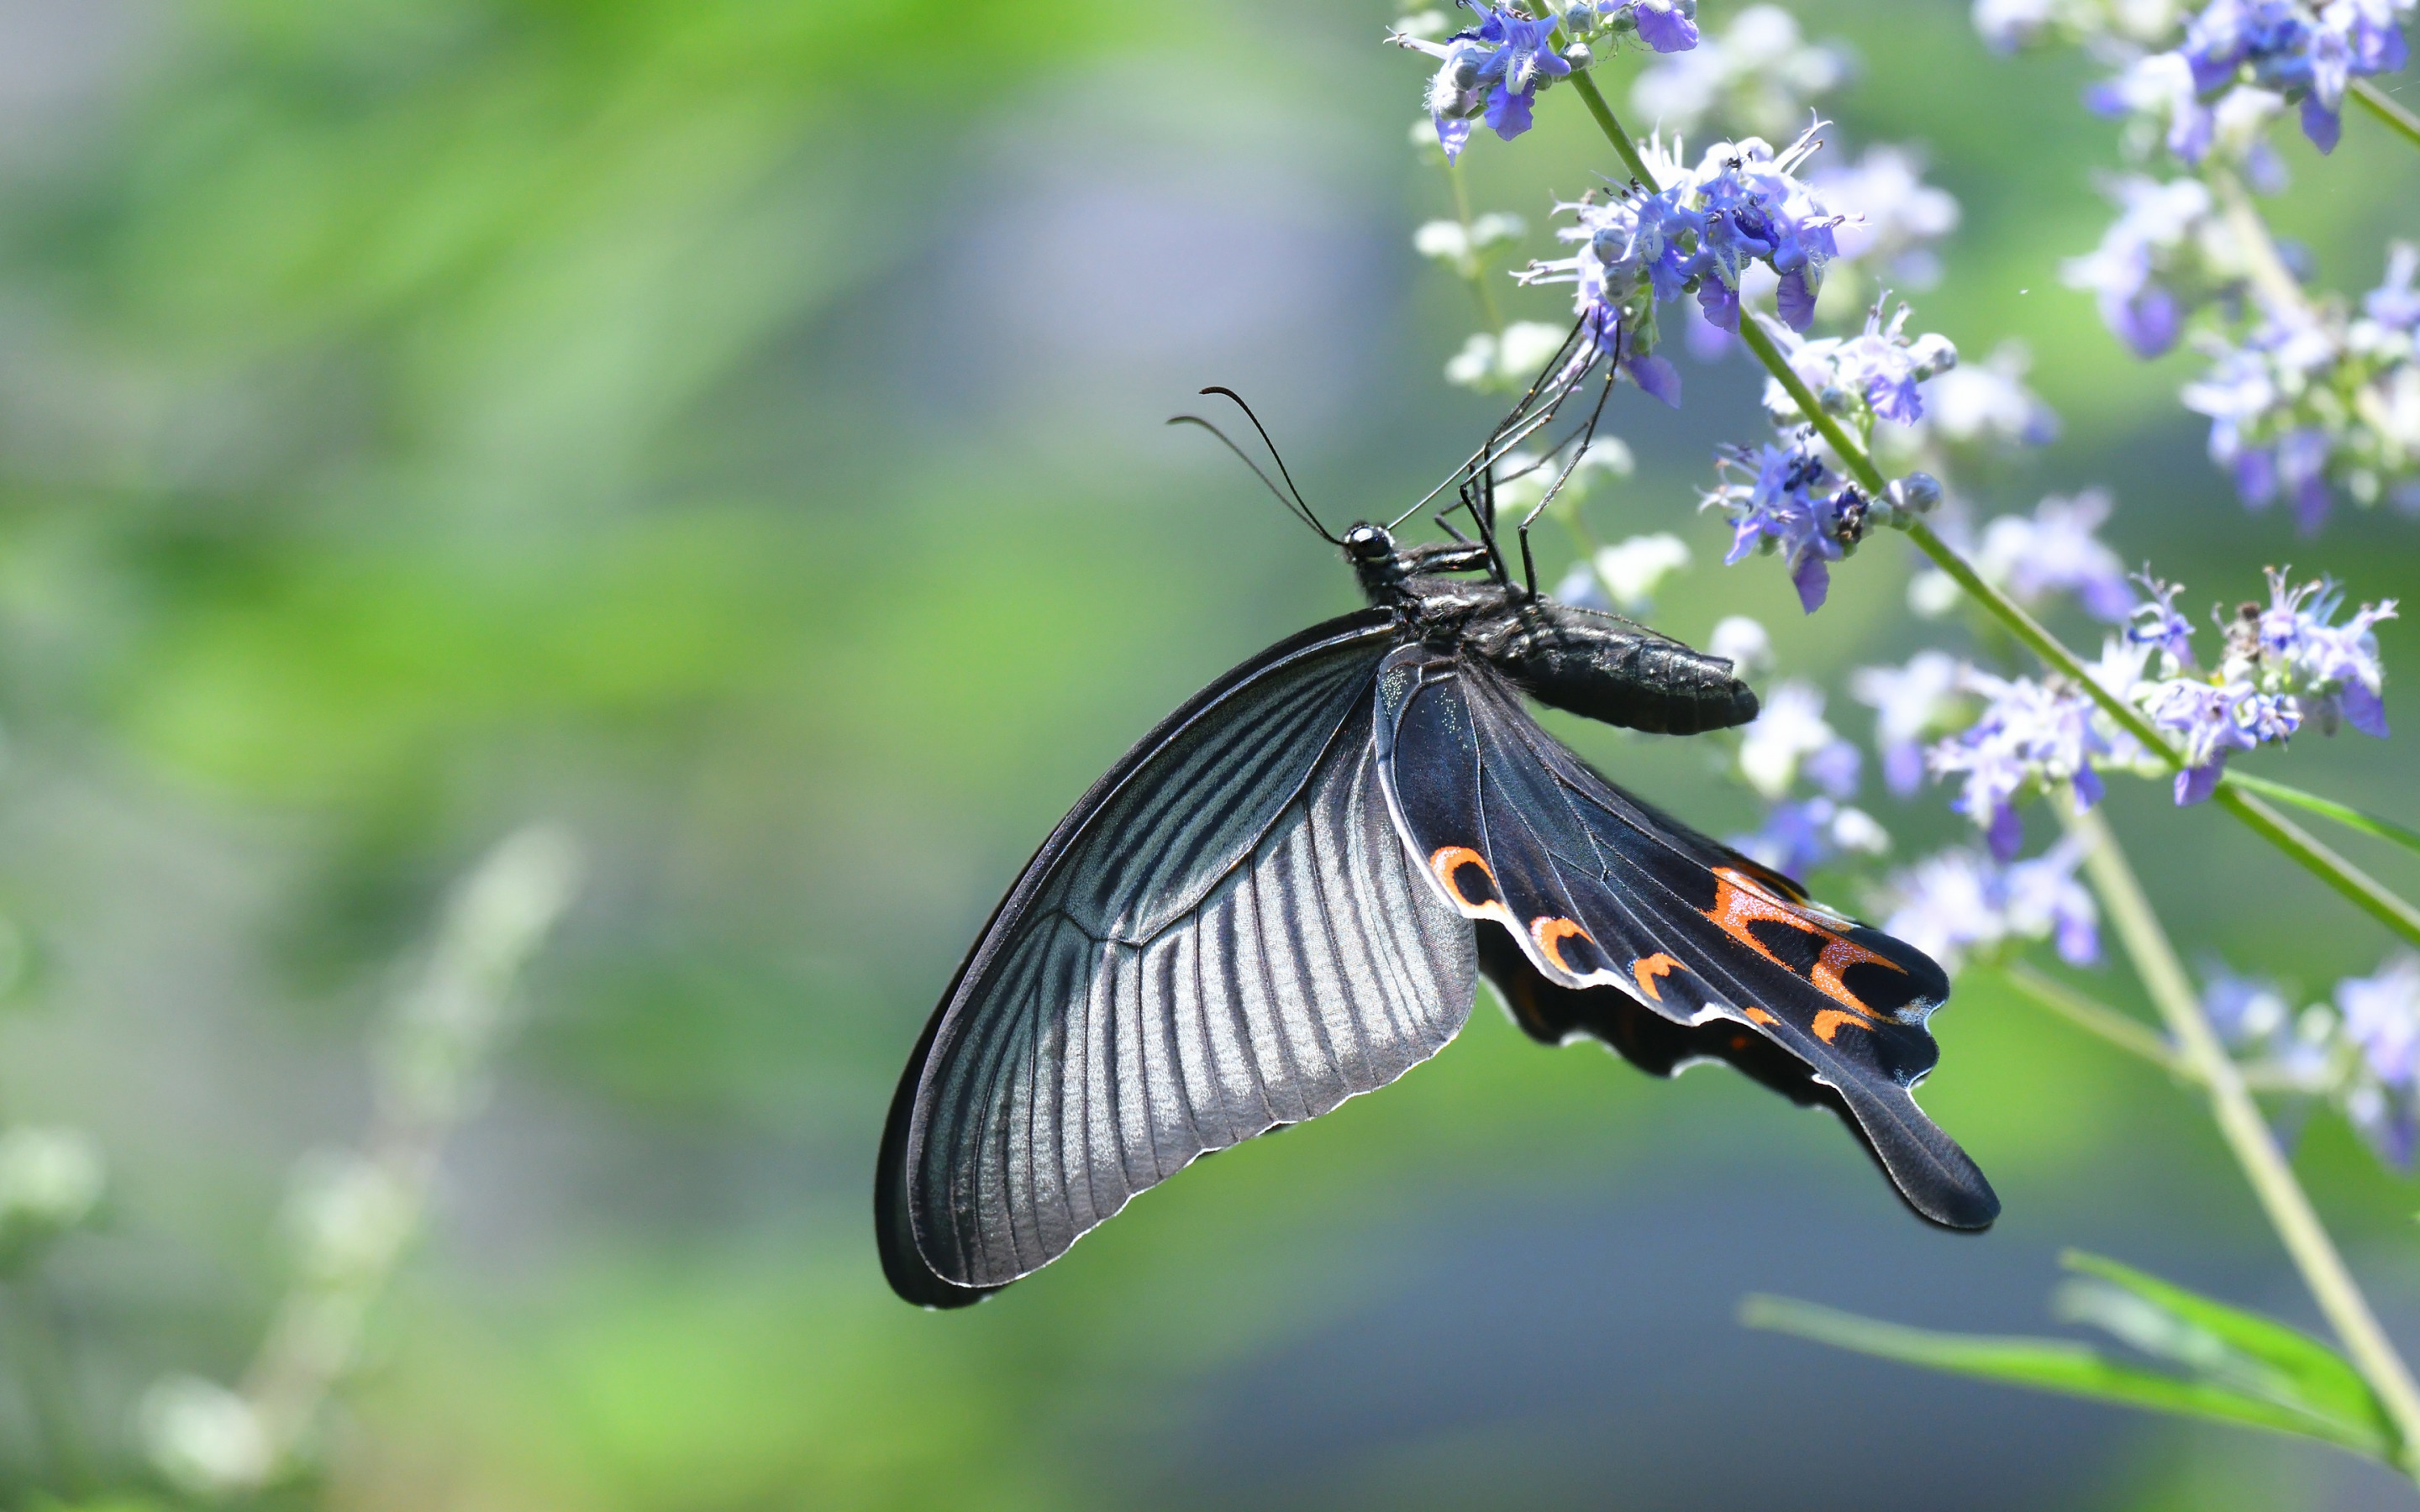 Old World swallowtail, butterfly, Papilio machaon, beautiful butterfly, machaon